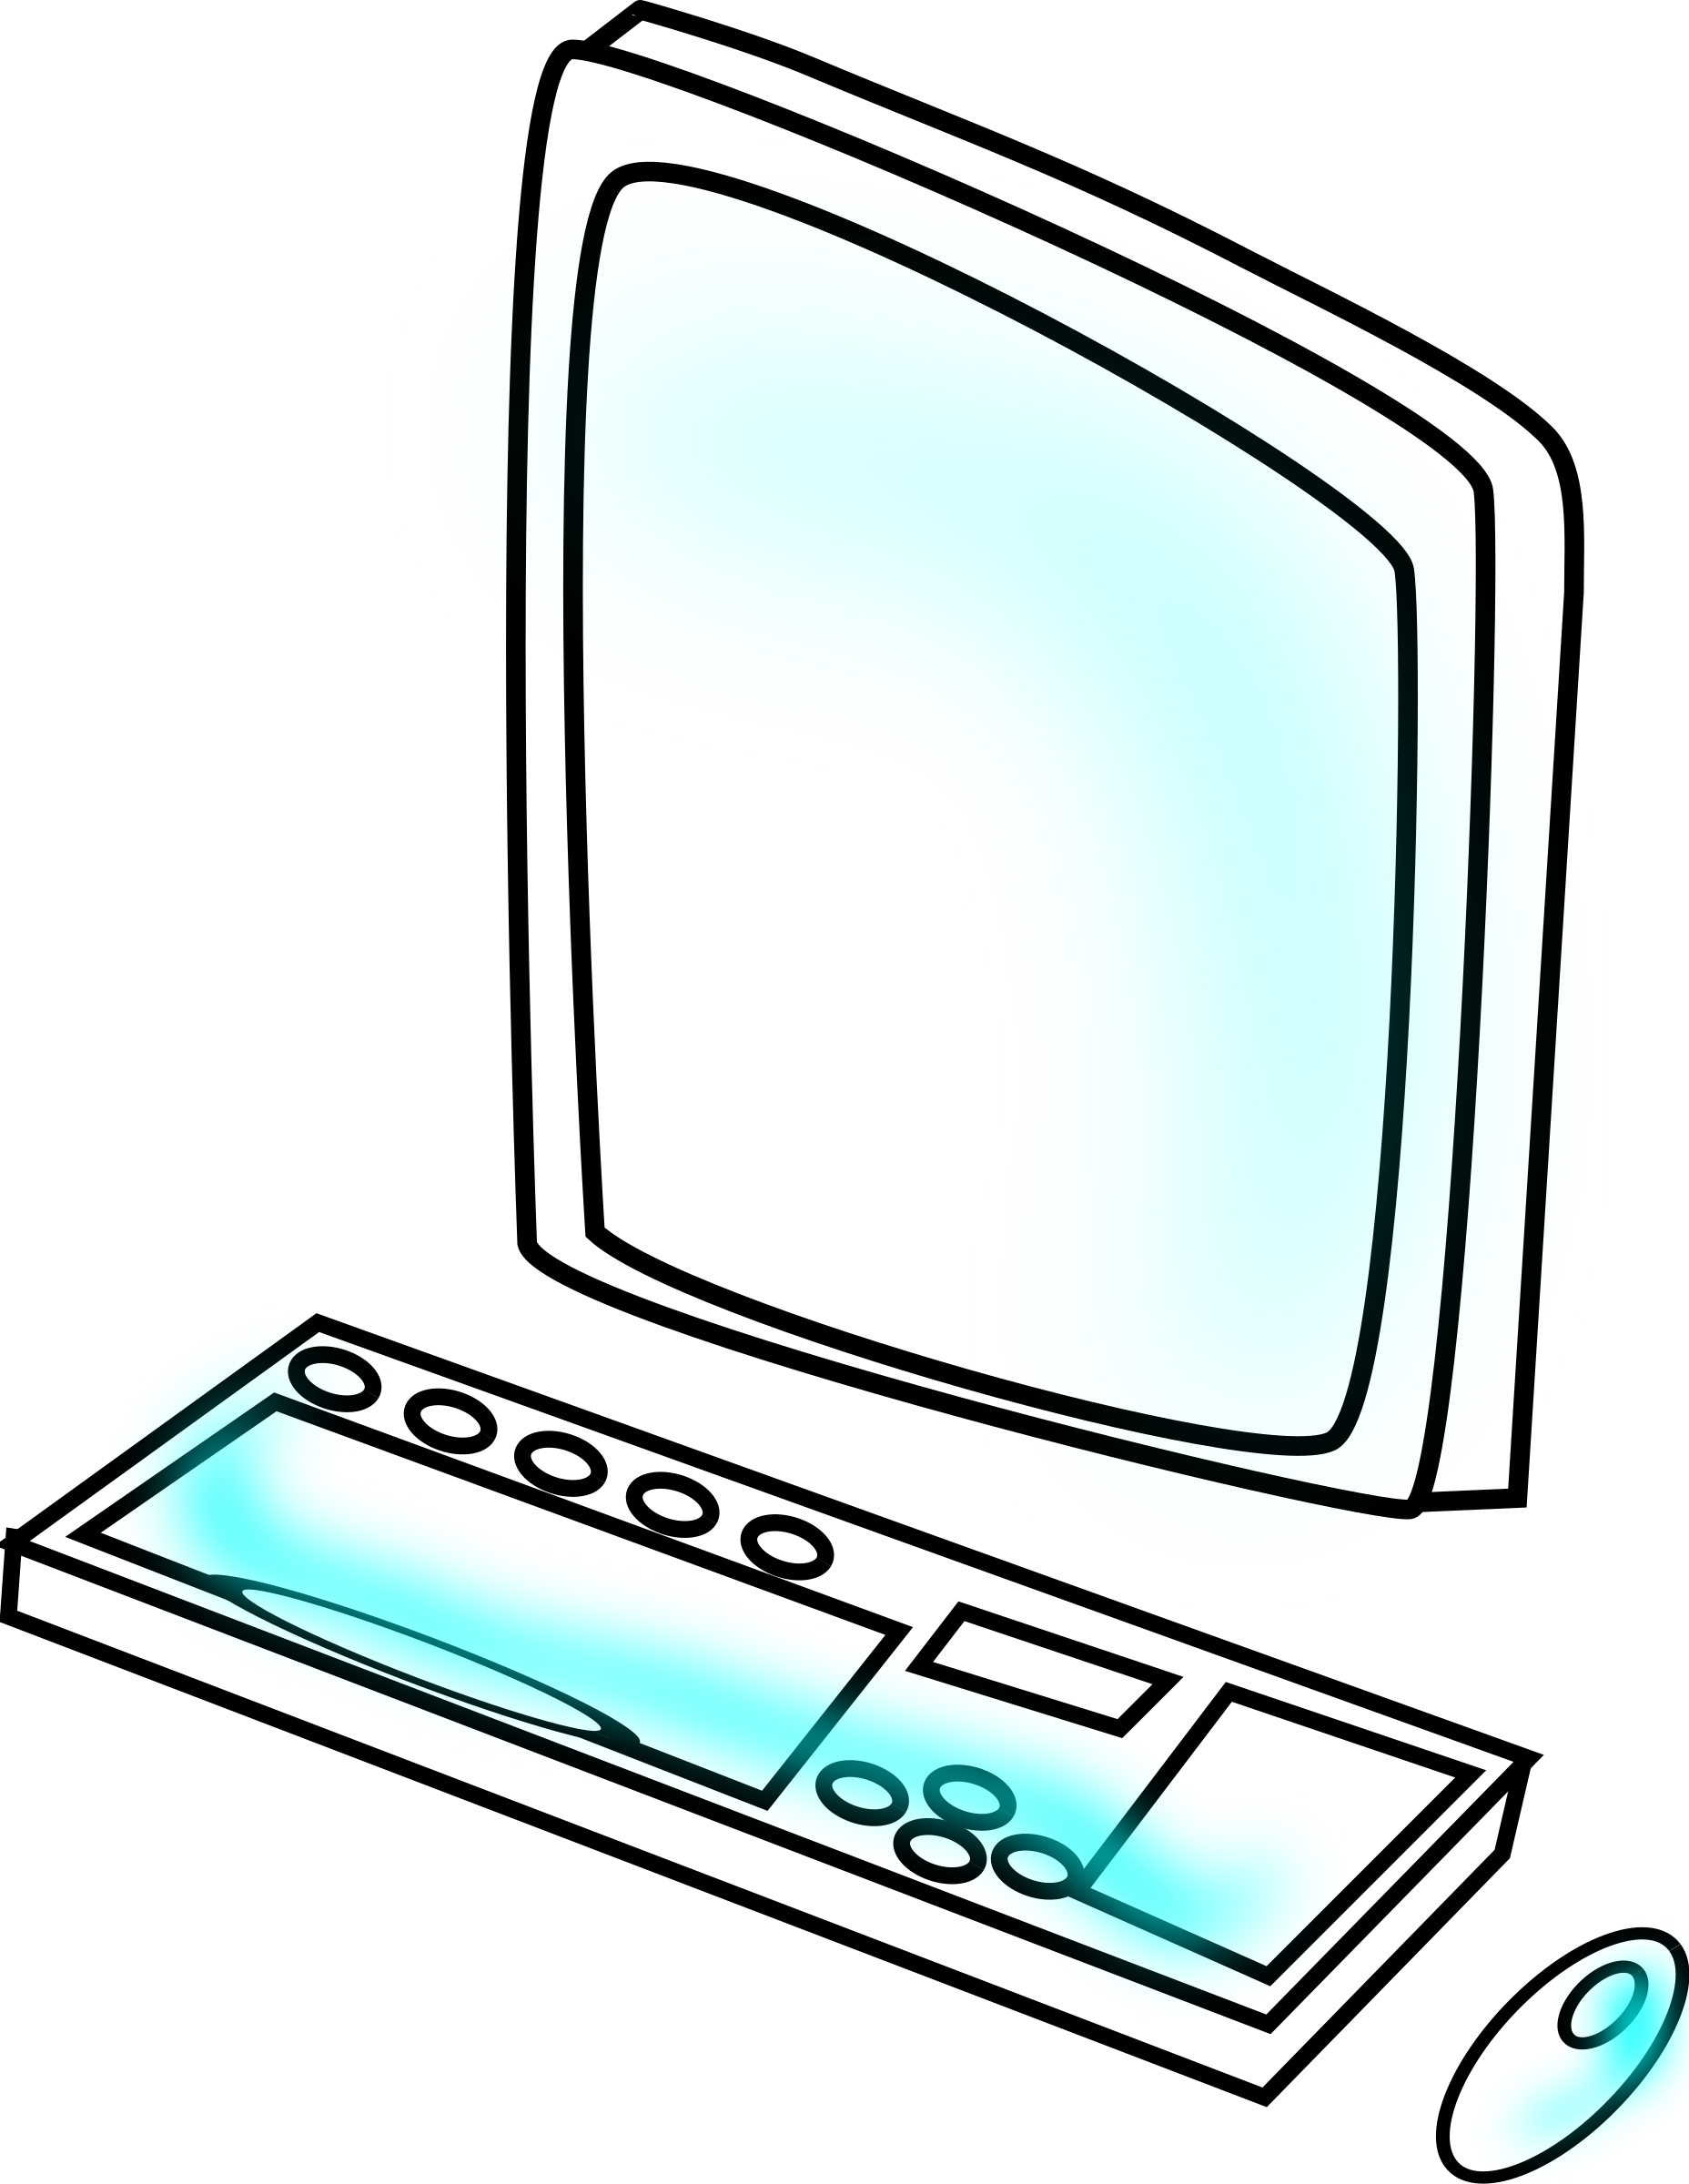 Clipart computer animated. Big image png